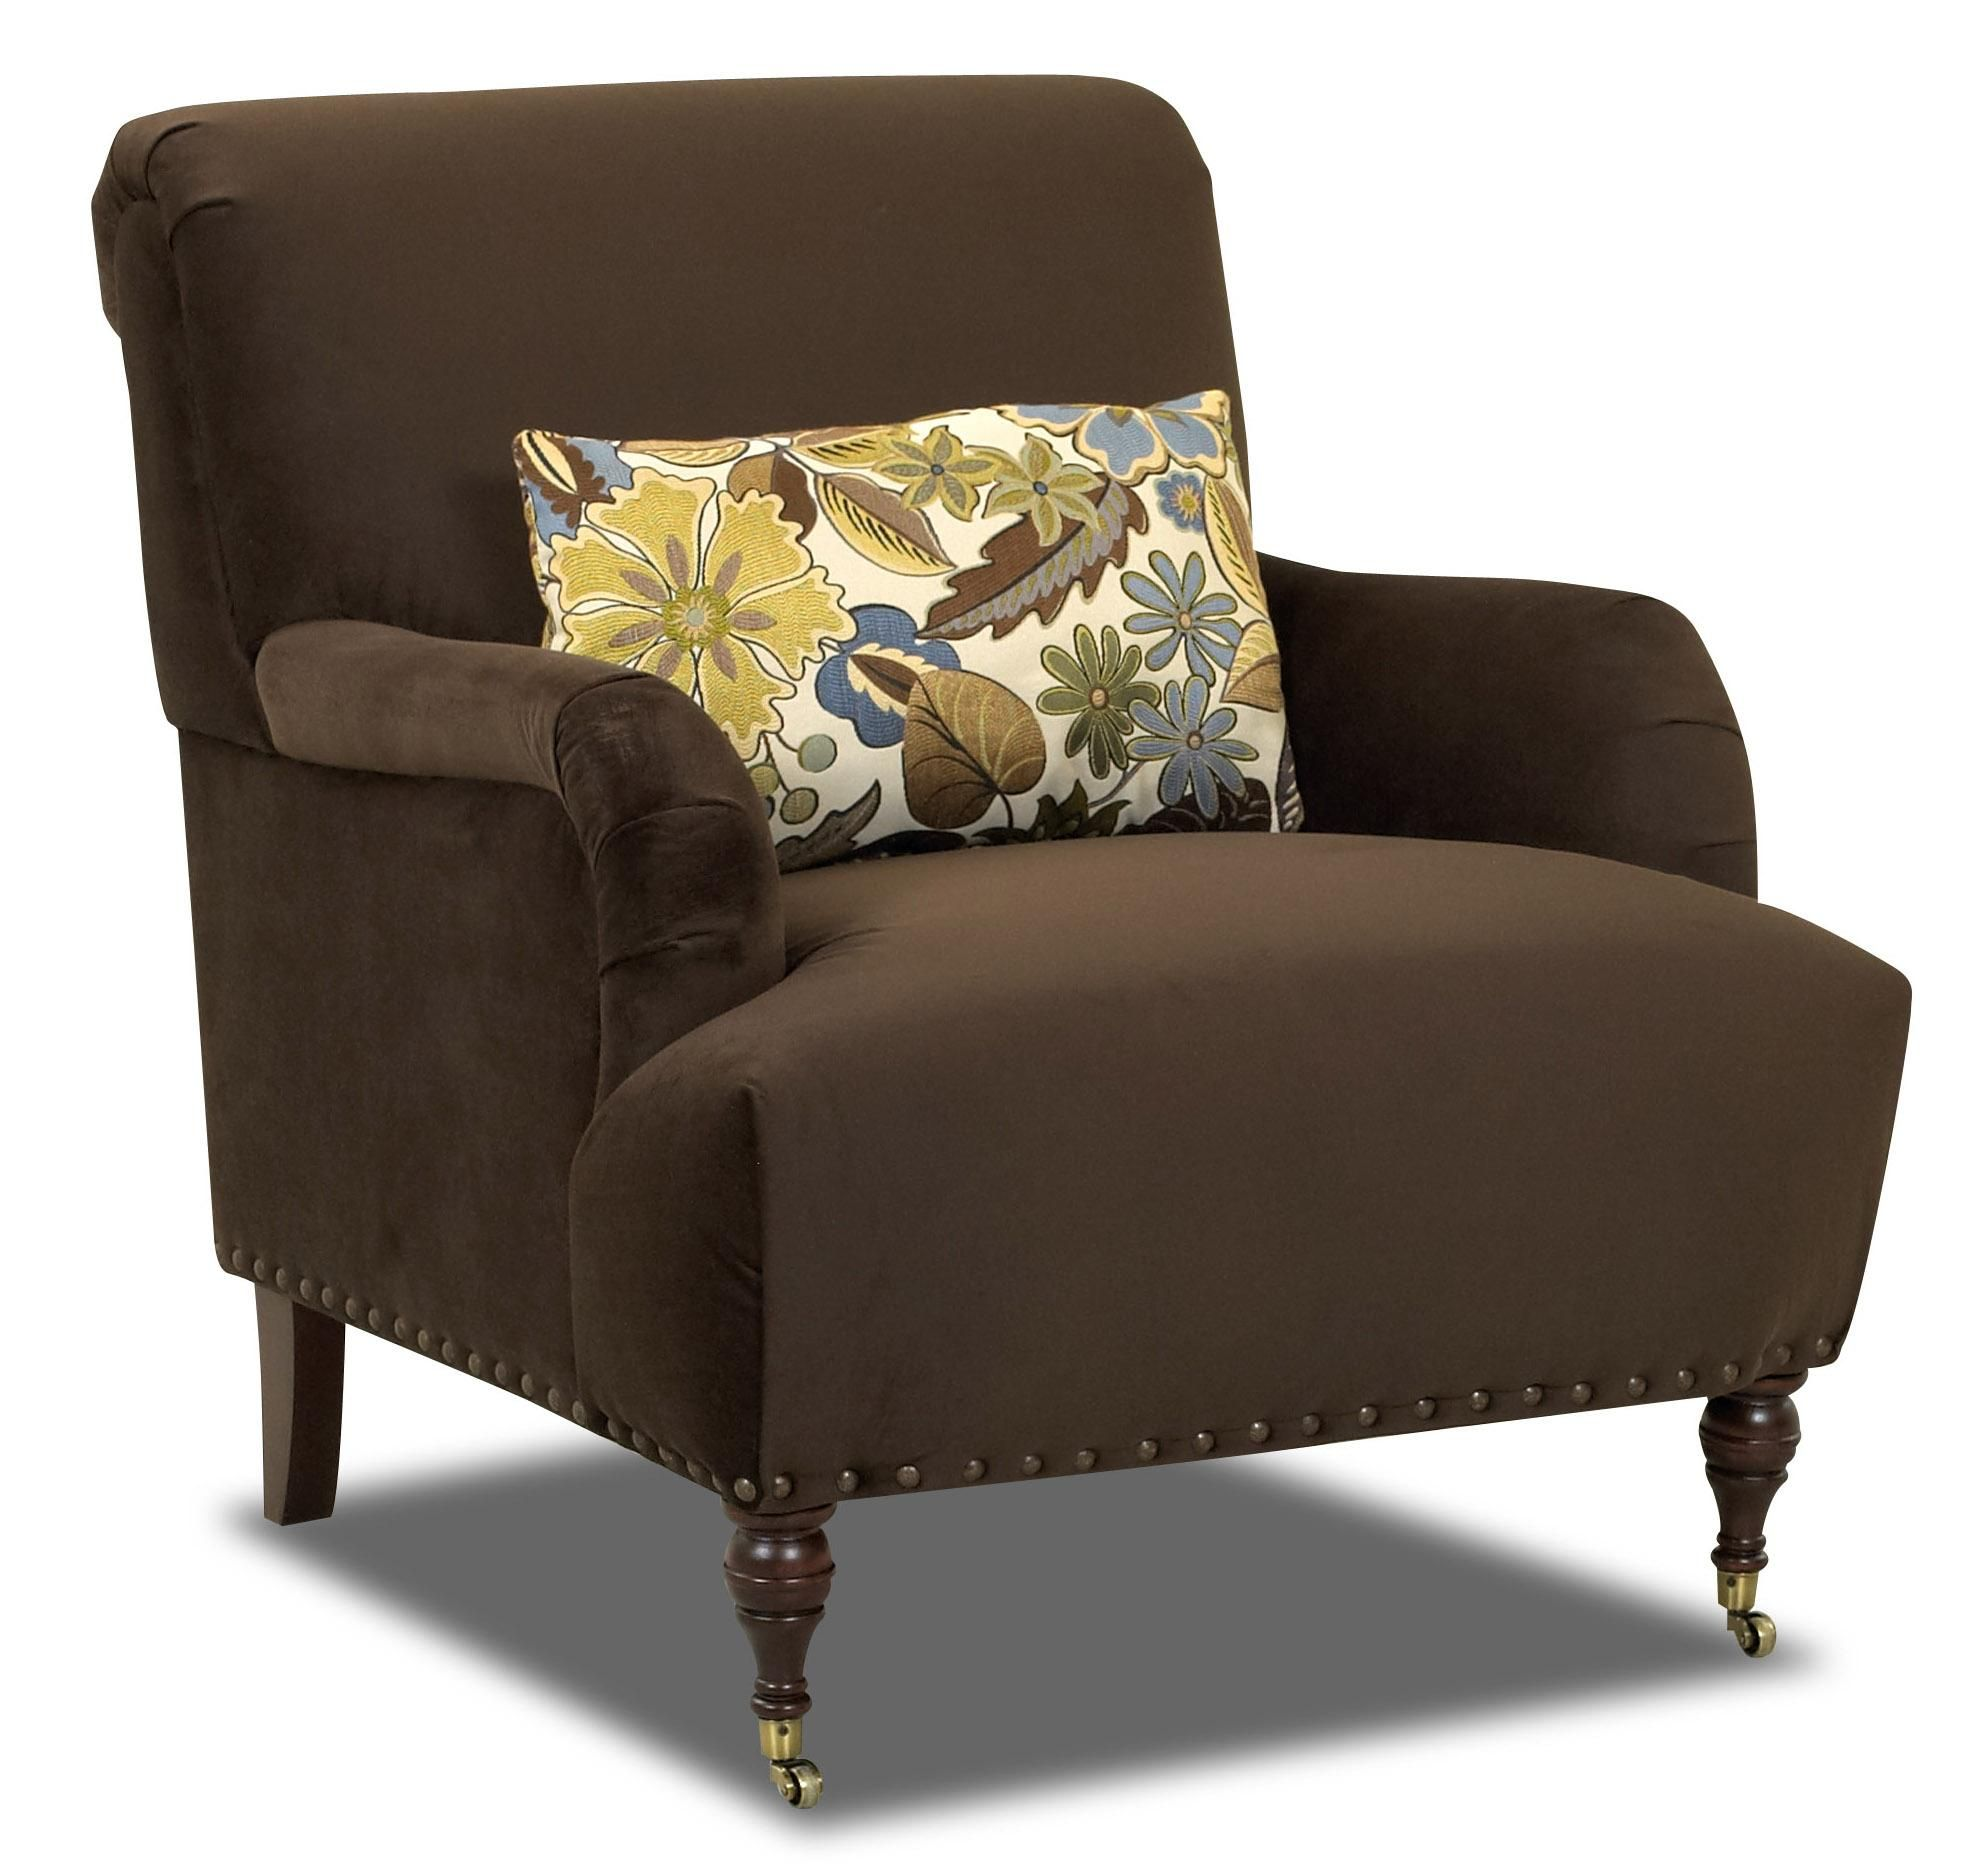 Genial Dapper Accent Chair By Simple Elegance. Like It In Tan For Living Room